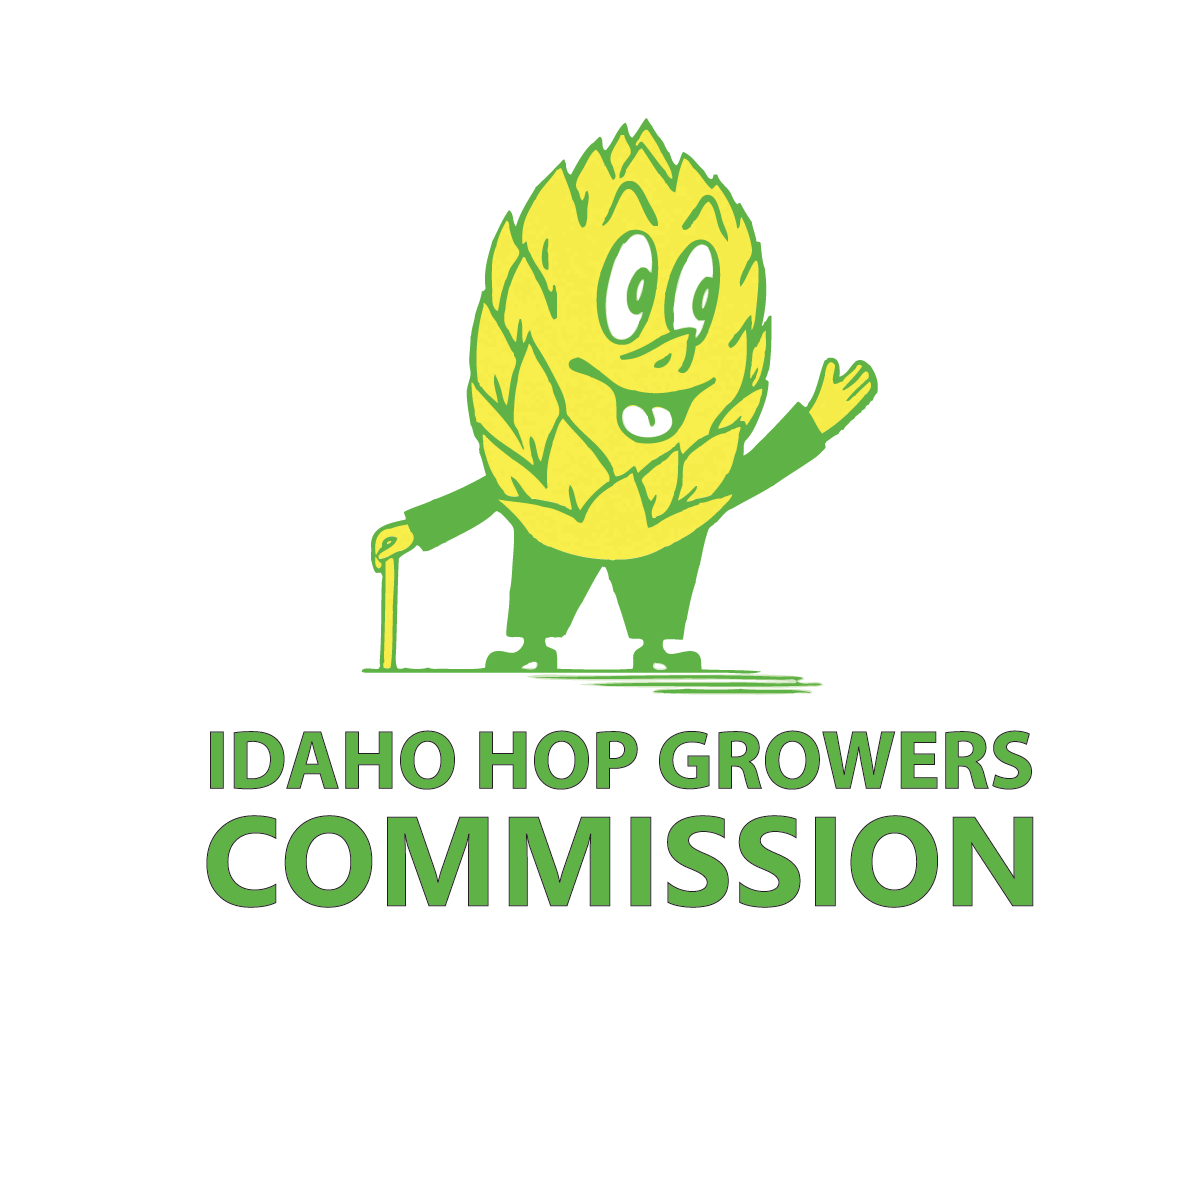 Idaho Hop Growers Commission